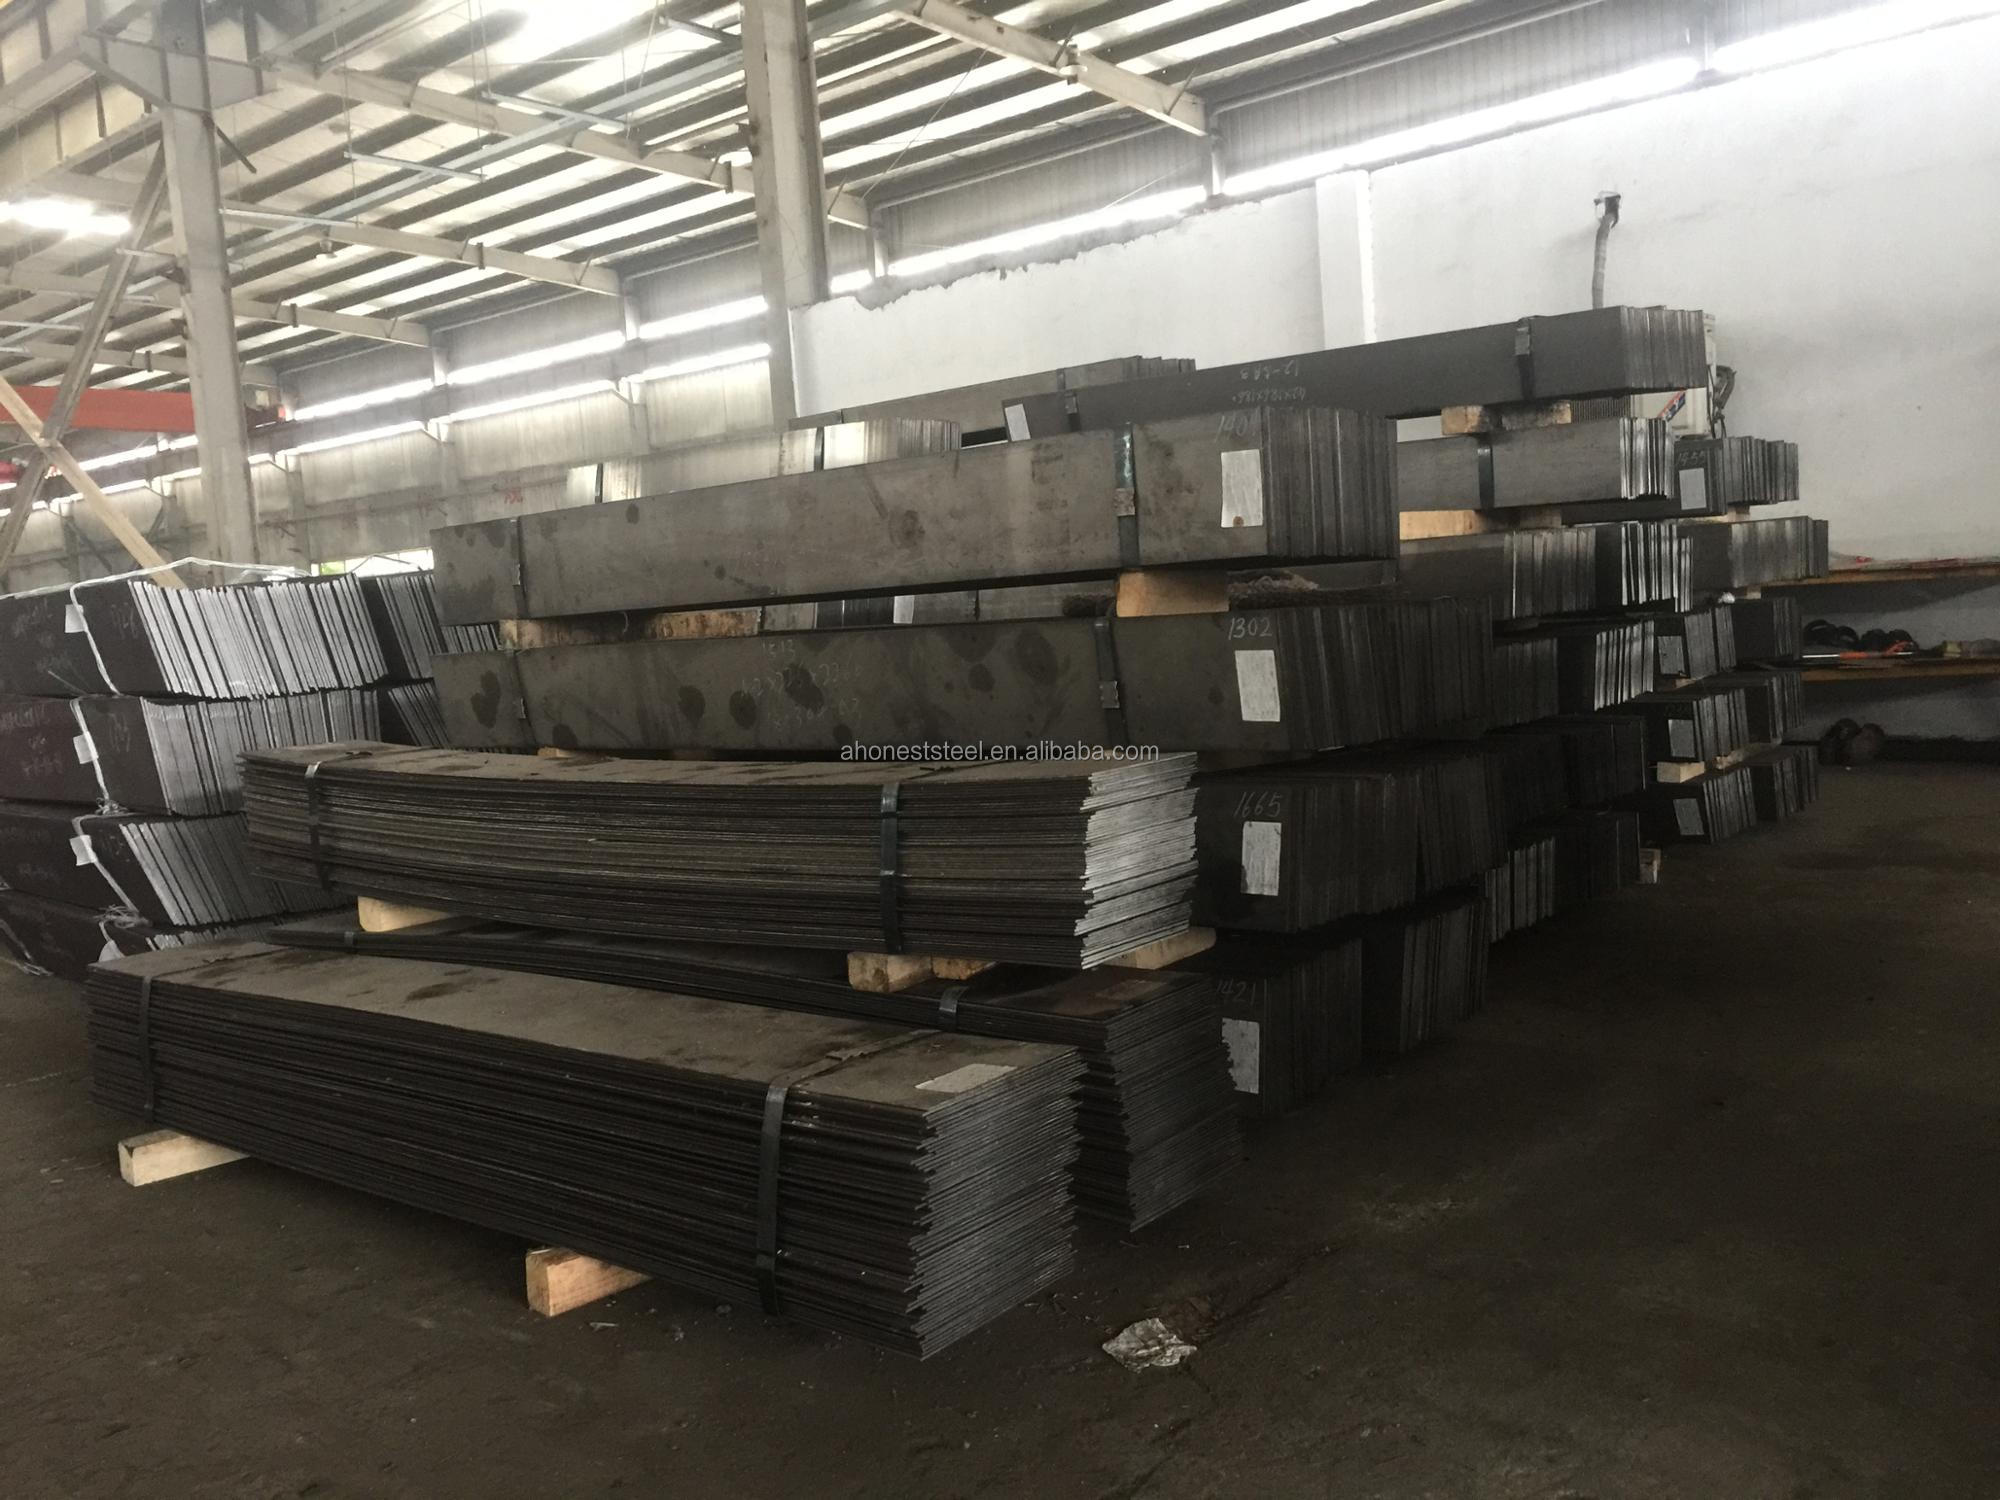 1.4031/X39Cr13martensitic stainless steel sheet (plate), hot and cold rolled, annealed